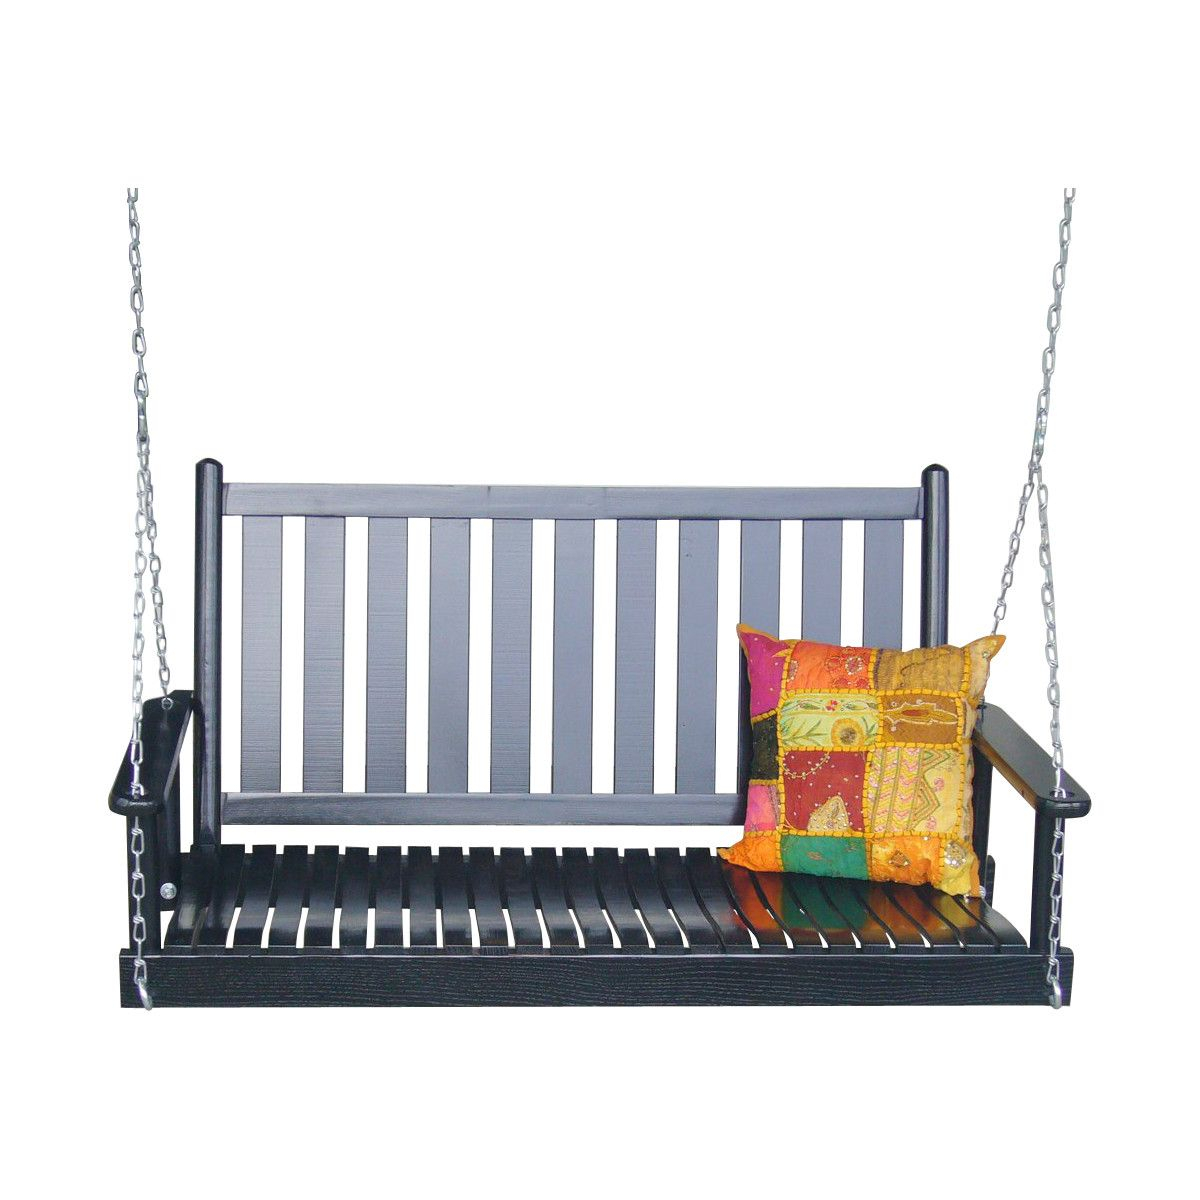 Swanley Porch Swing With Chain | Home Decor | Porch Swing Regarding Fordyce Porch Swings (View 10 of 25)